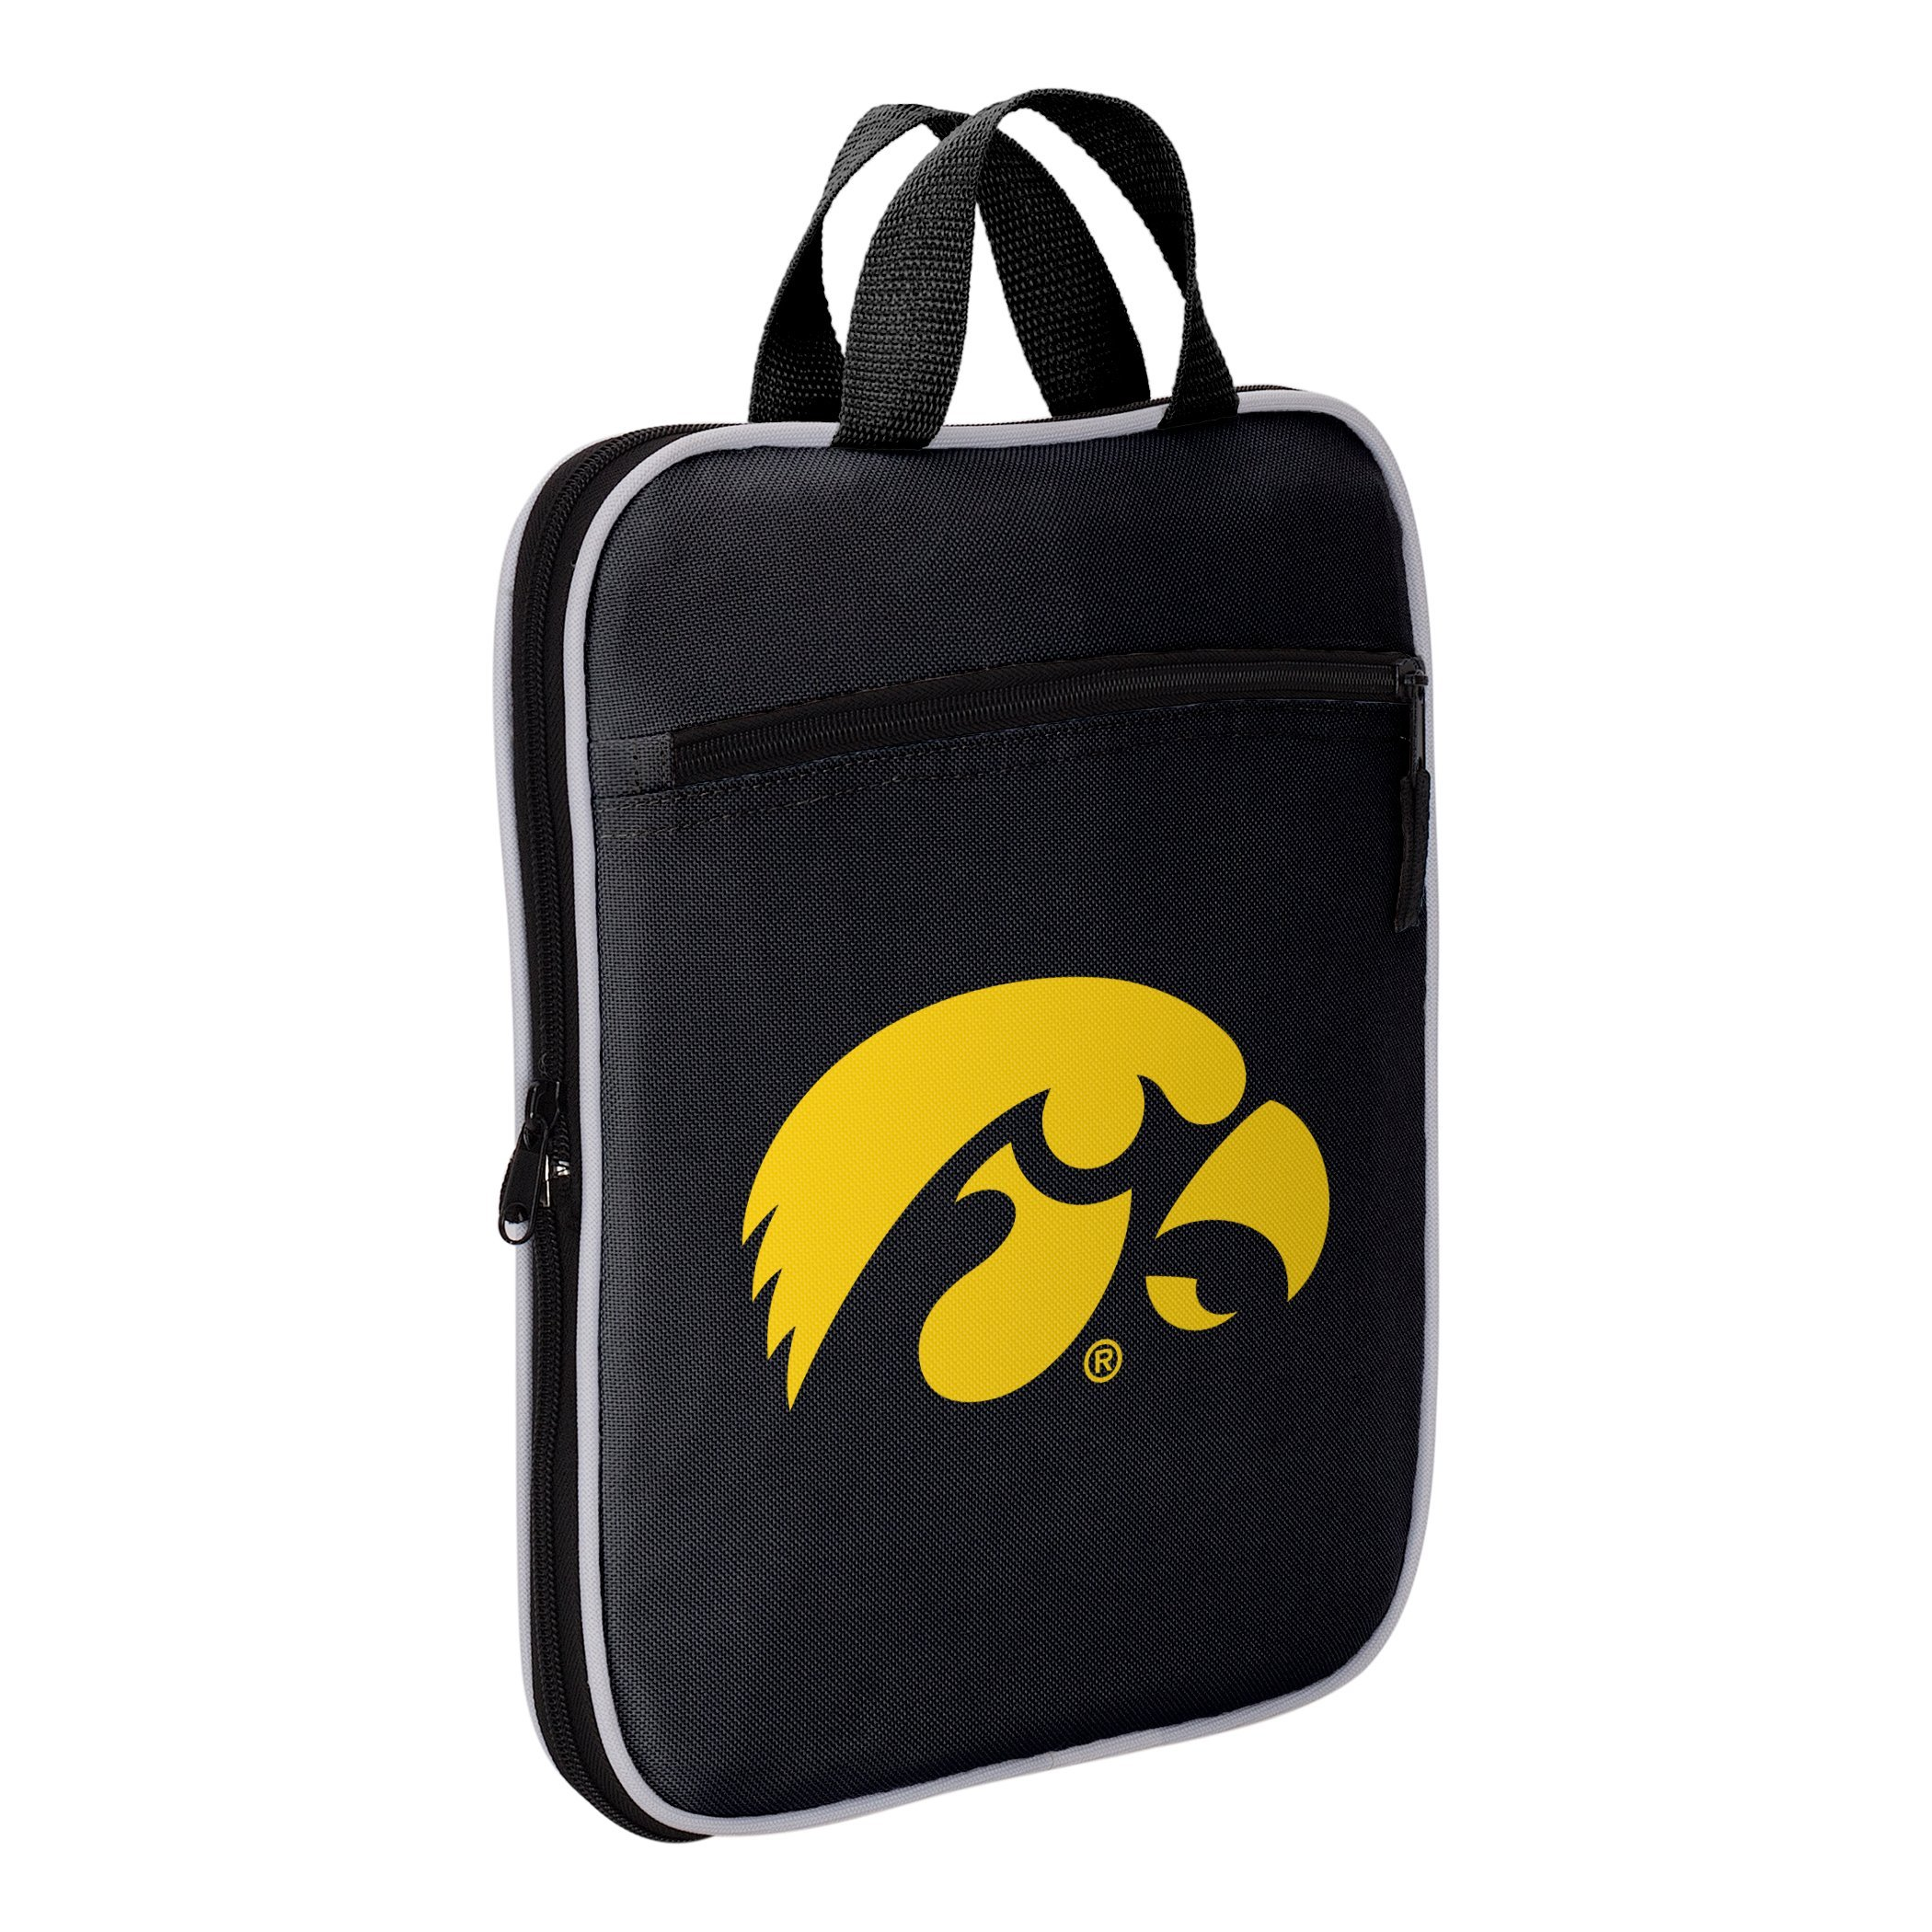 Officially Licensed NCAA Iowa Hawkeyes Steal Duffel Bag by The Northwest Company (Image #4)